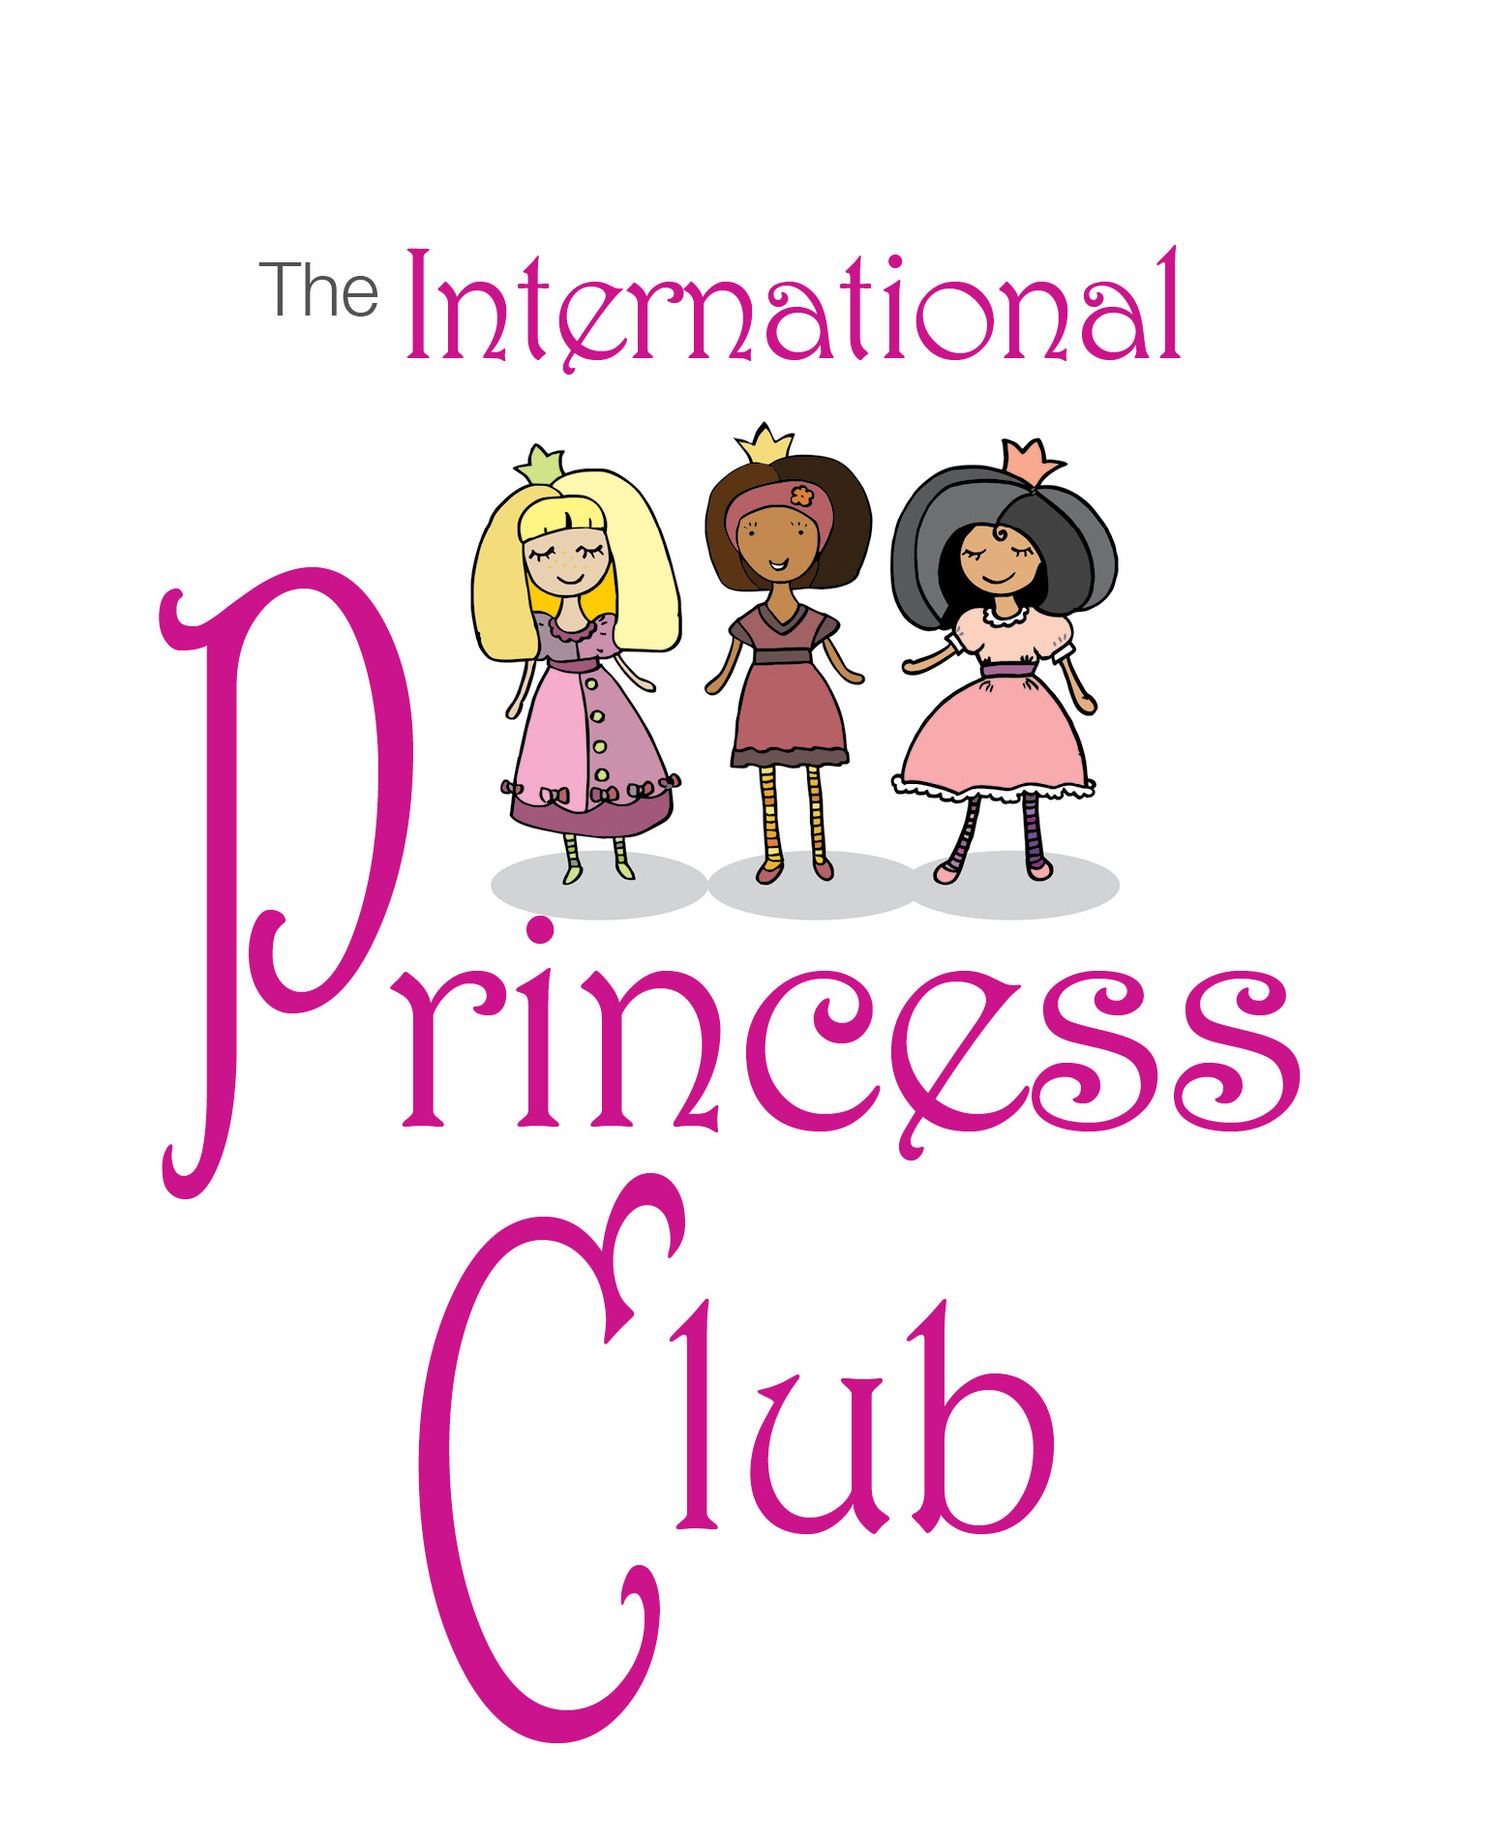 The International Princess Club